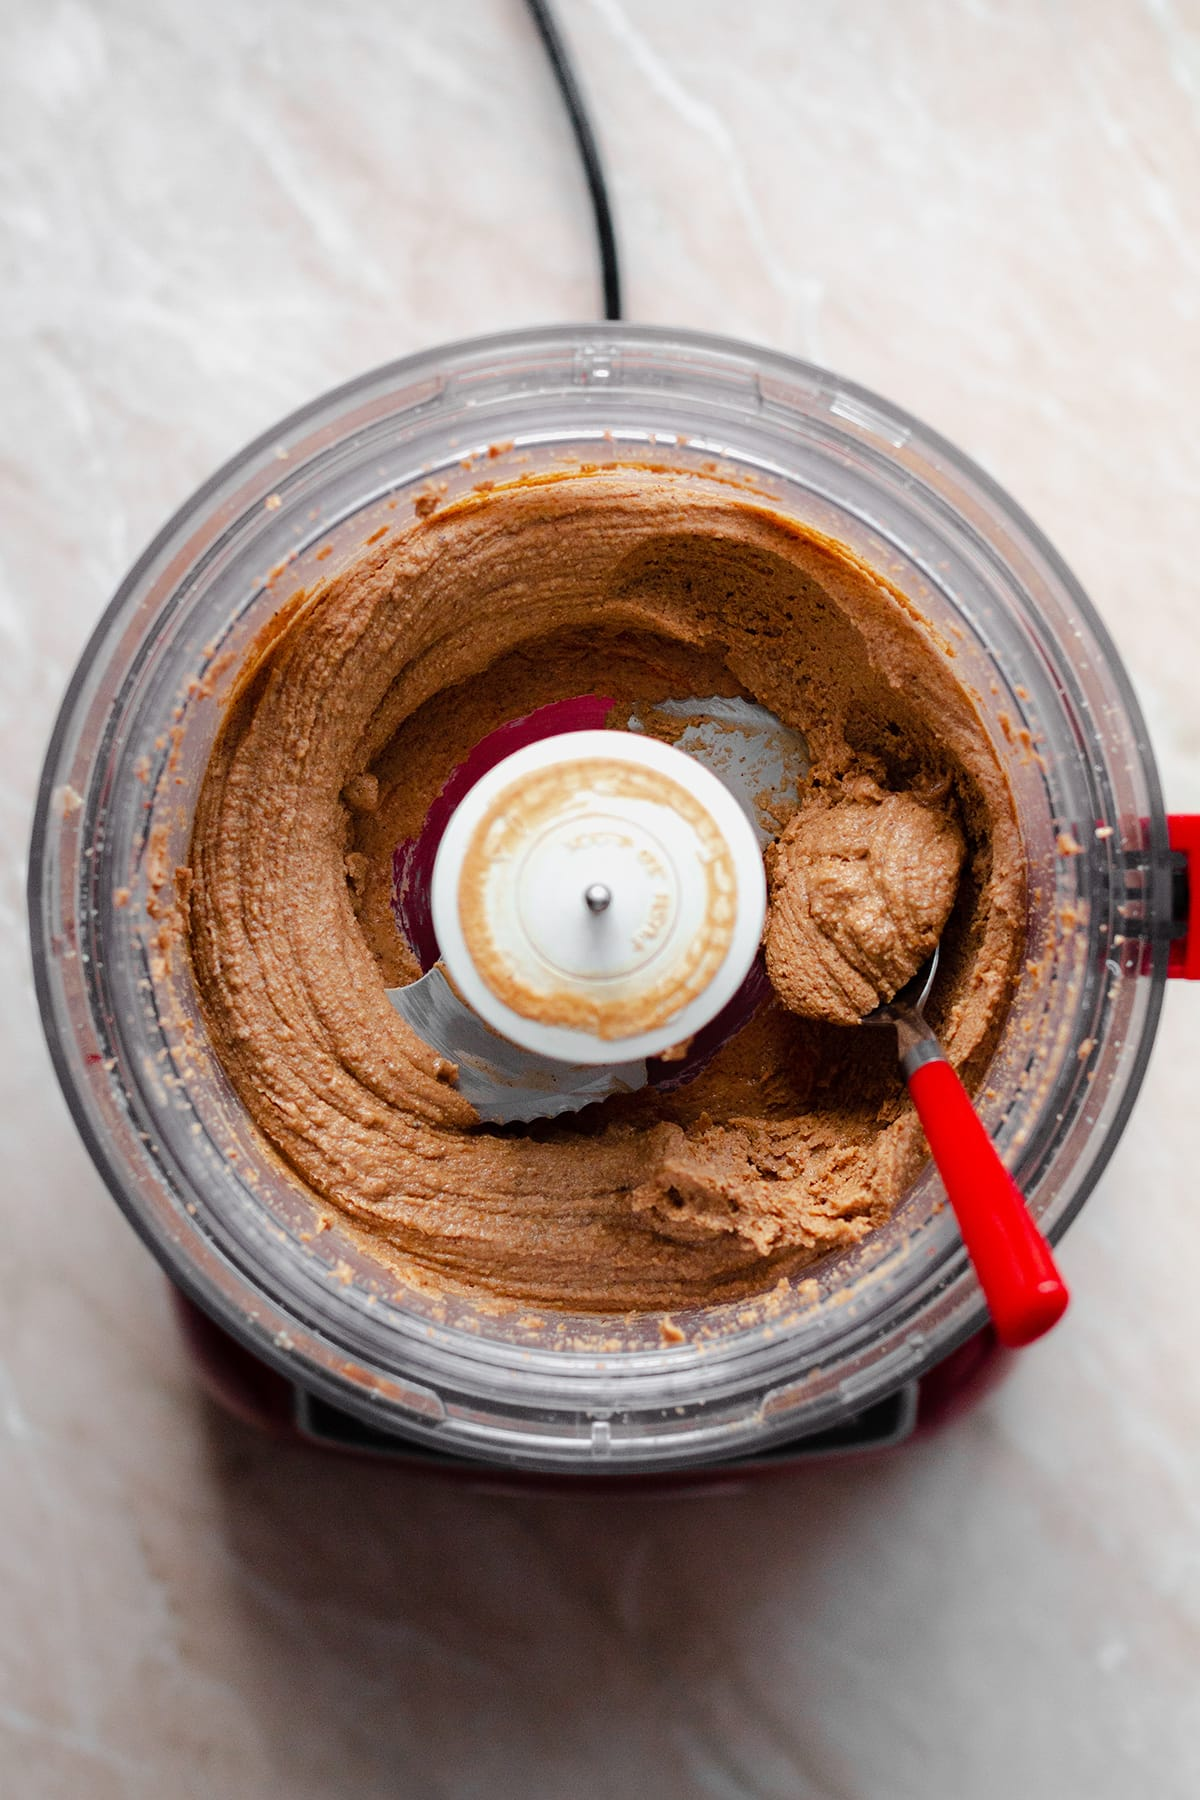 Salted Caramel Nut butter in a food processor with a red spoon on the right.